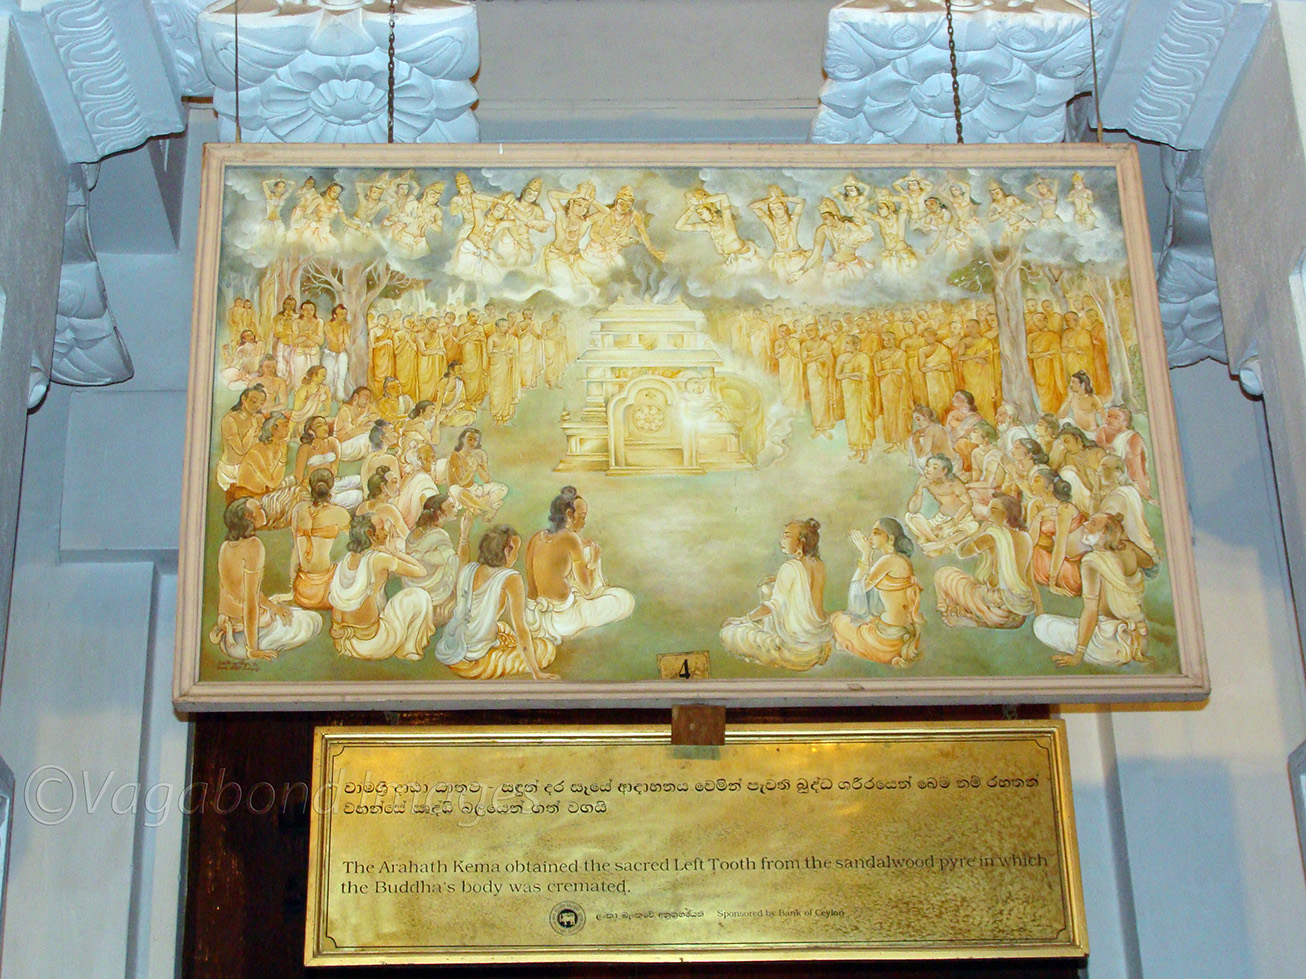 The origin of the tooth relic